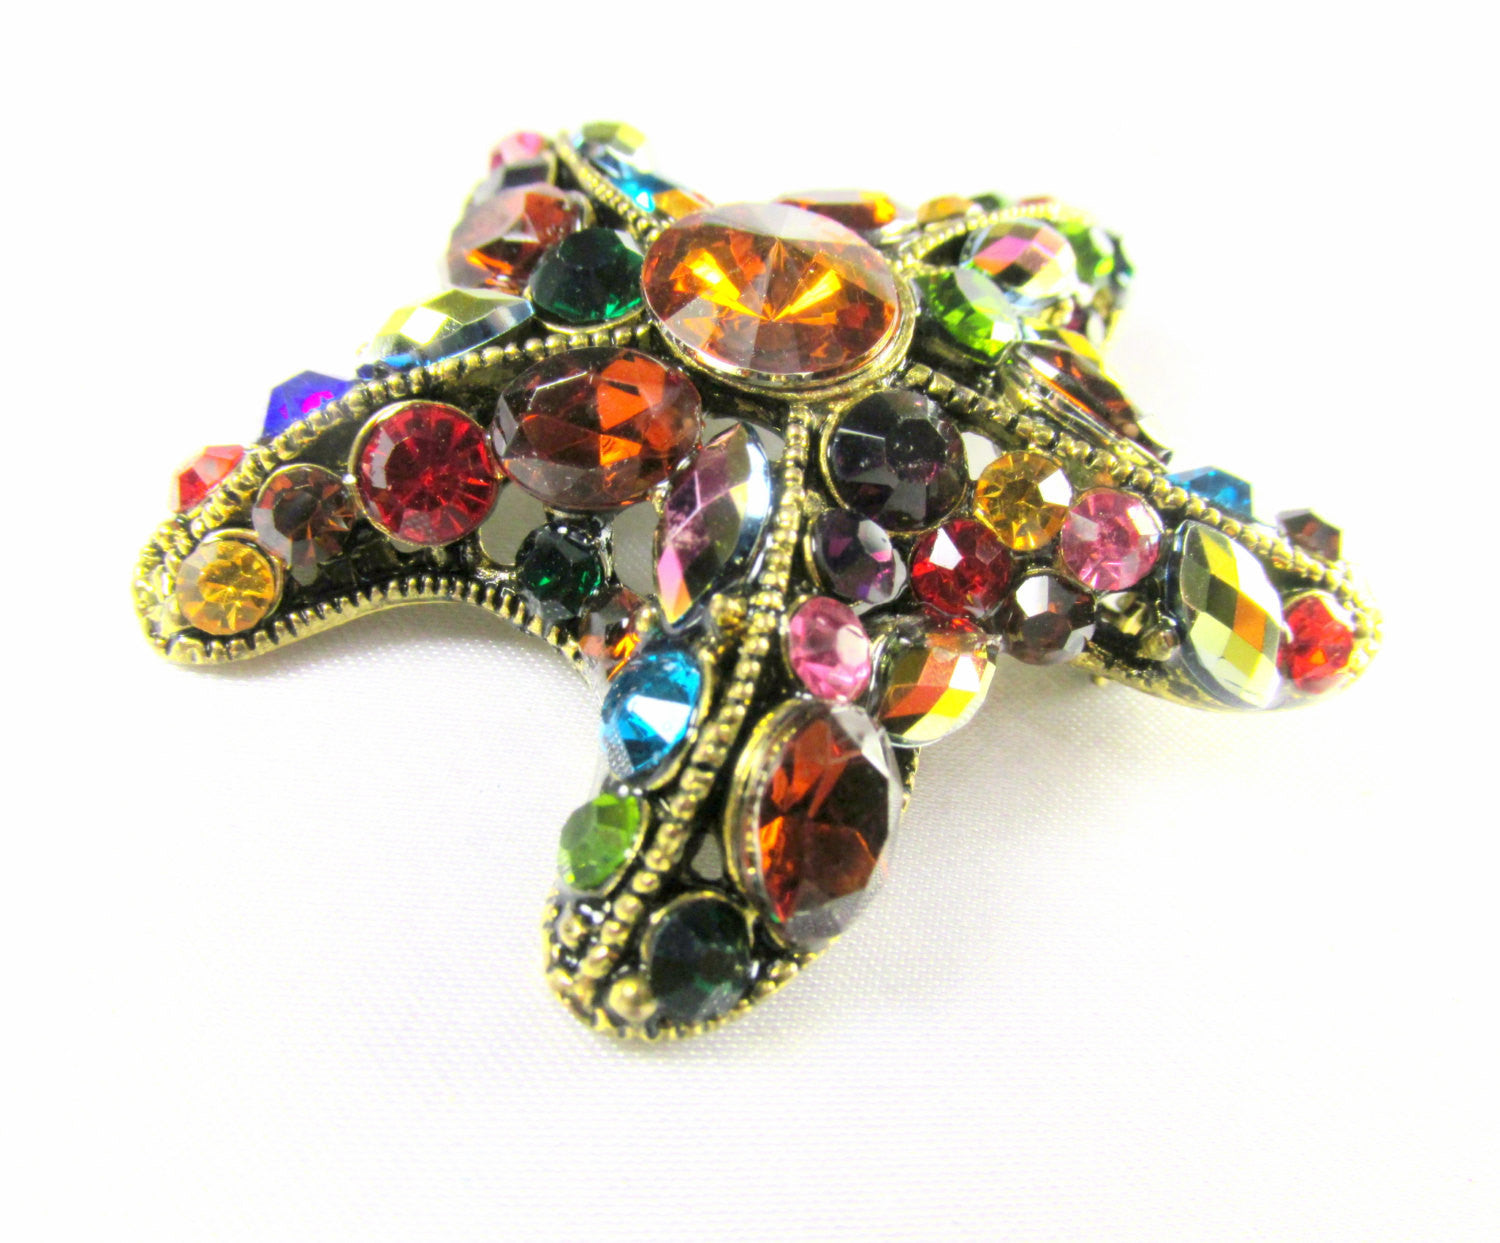 Multicolor Starfish Brooch in Antique Gold - Odyssey Cache - 4